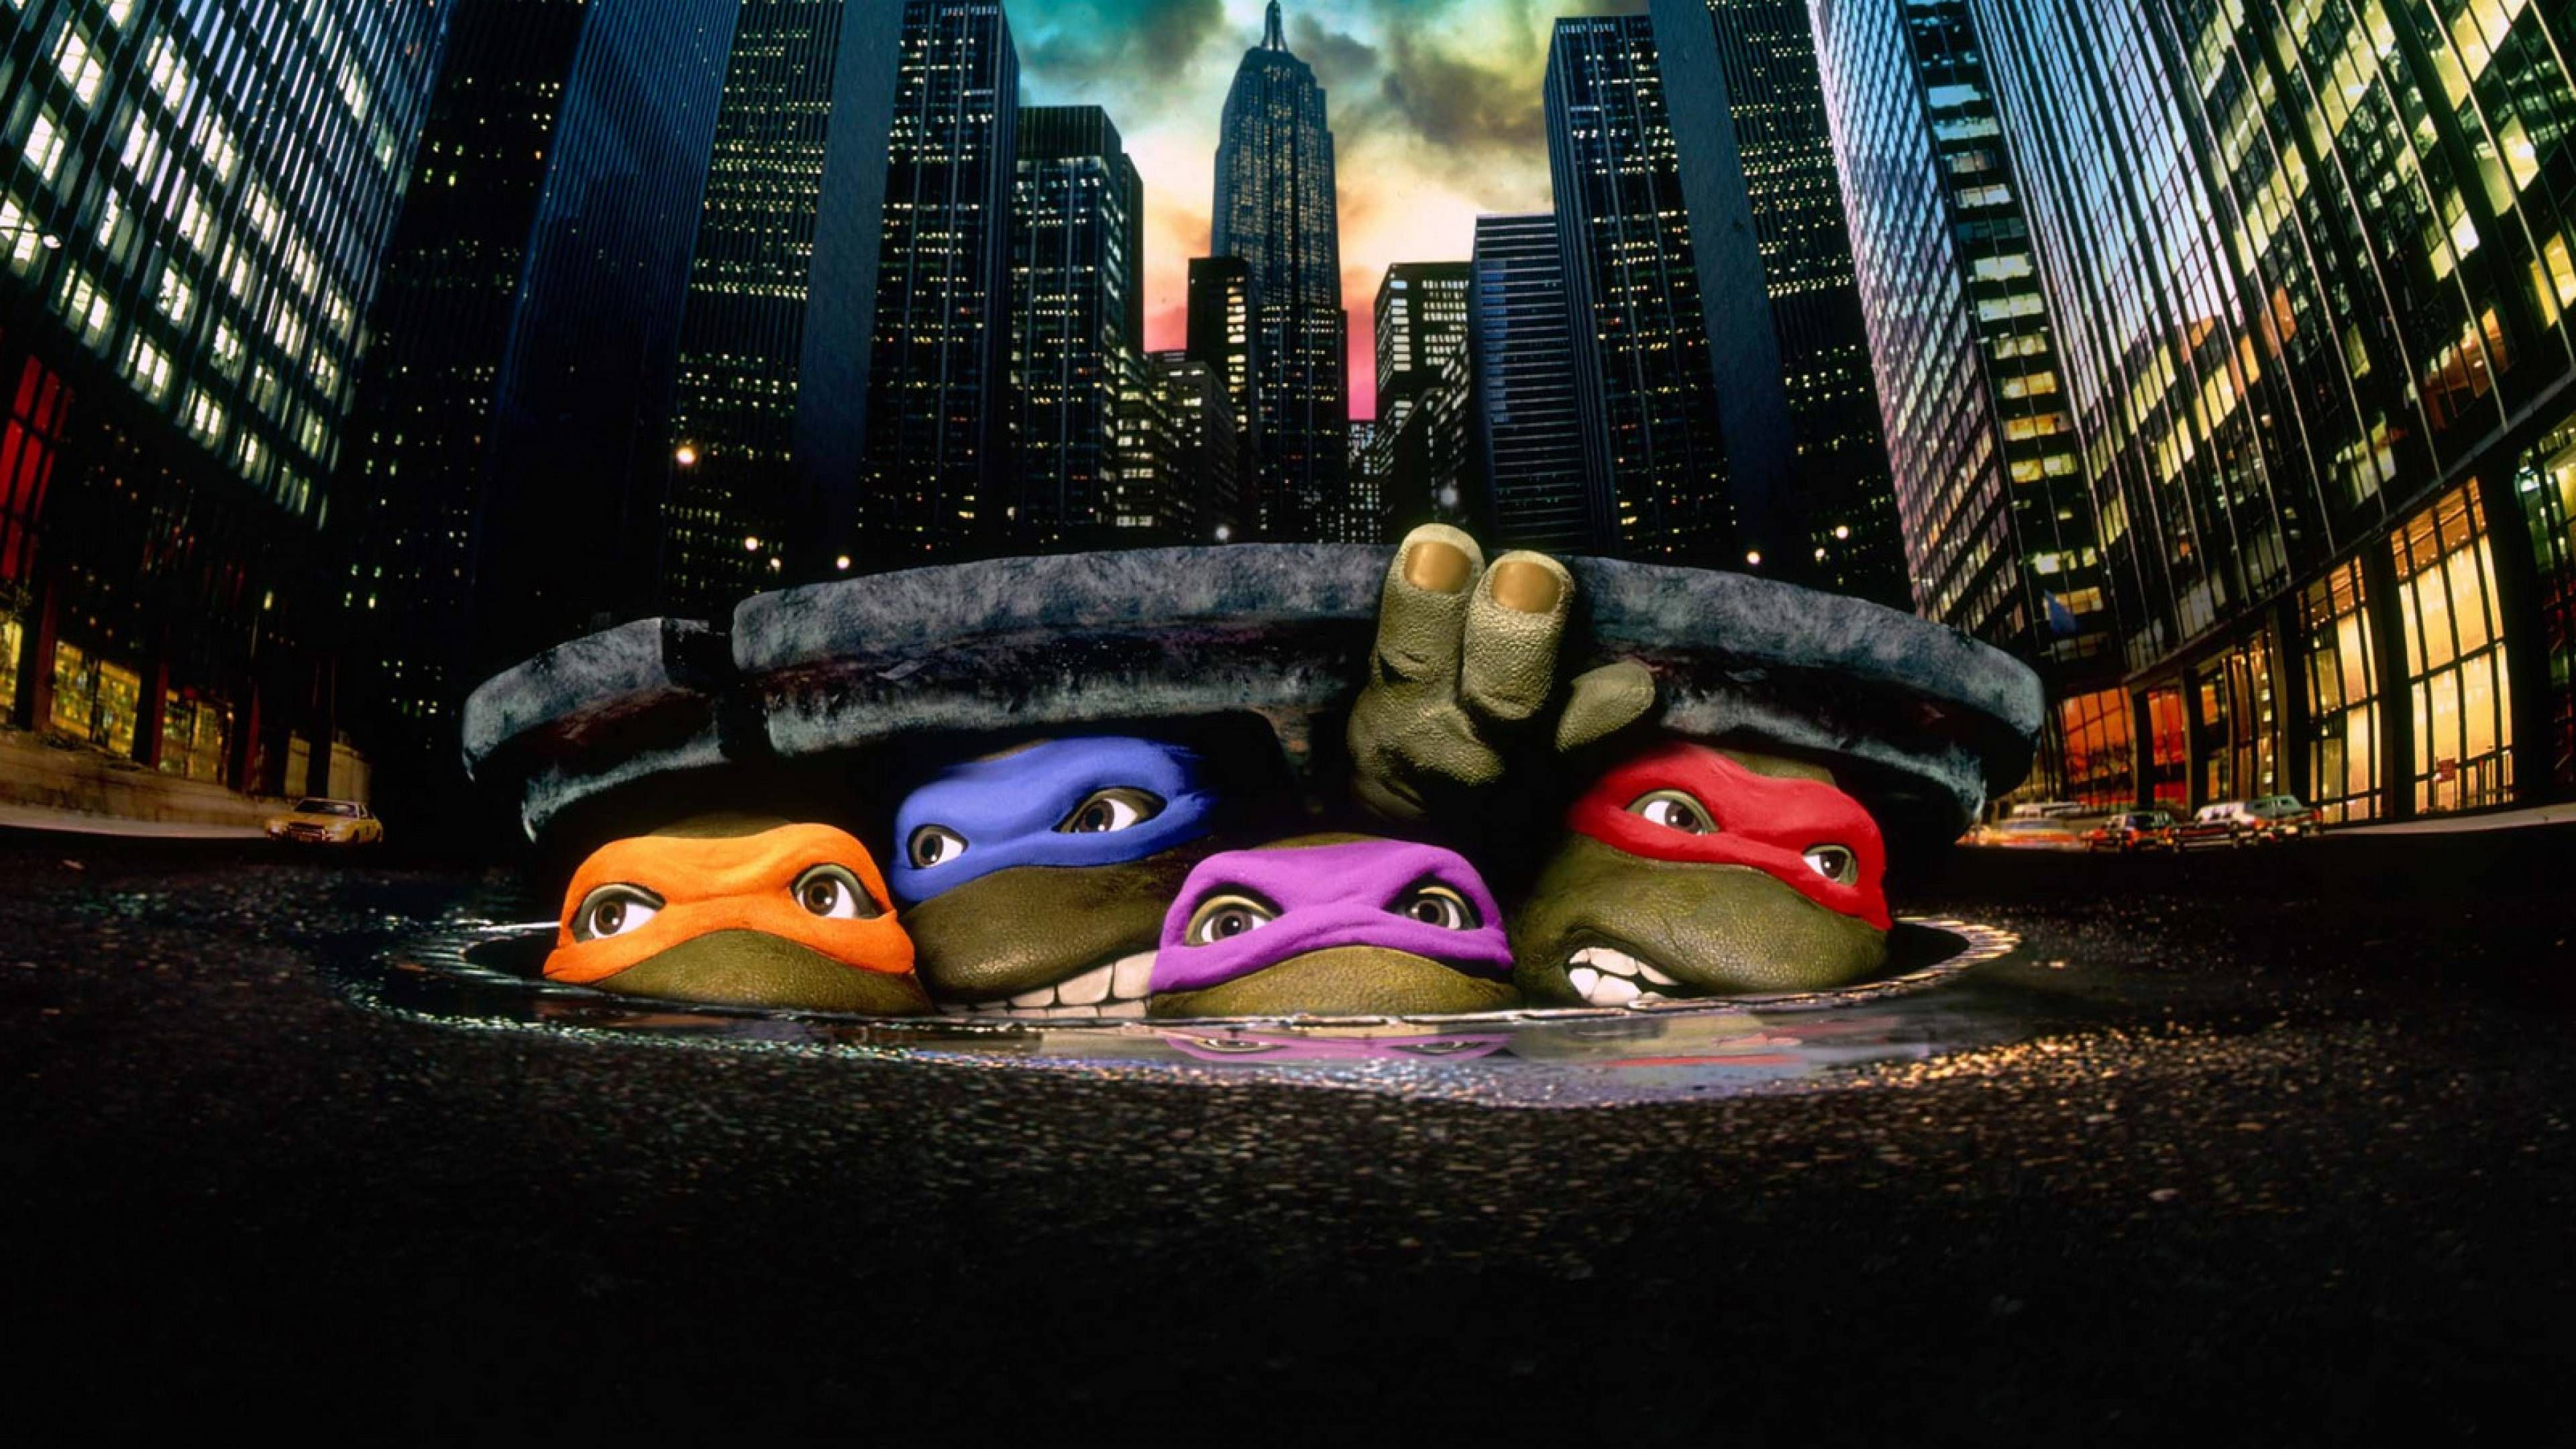 Teenage Mutant Ninja Turtles Wallpapers Wallpaper